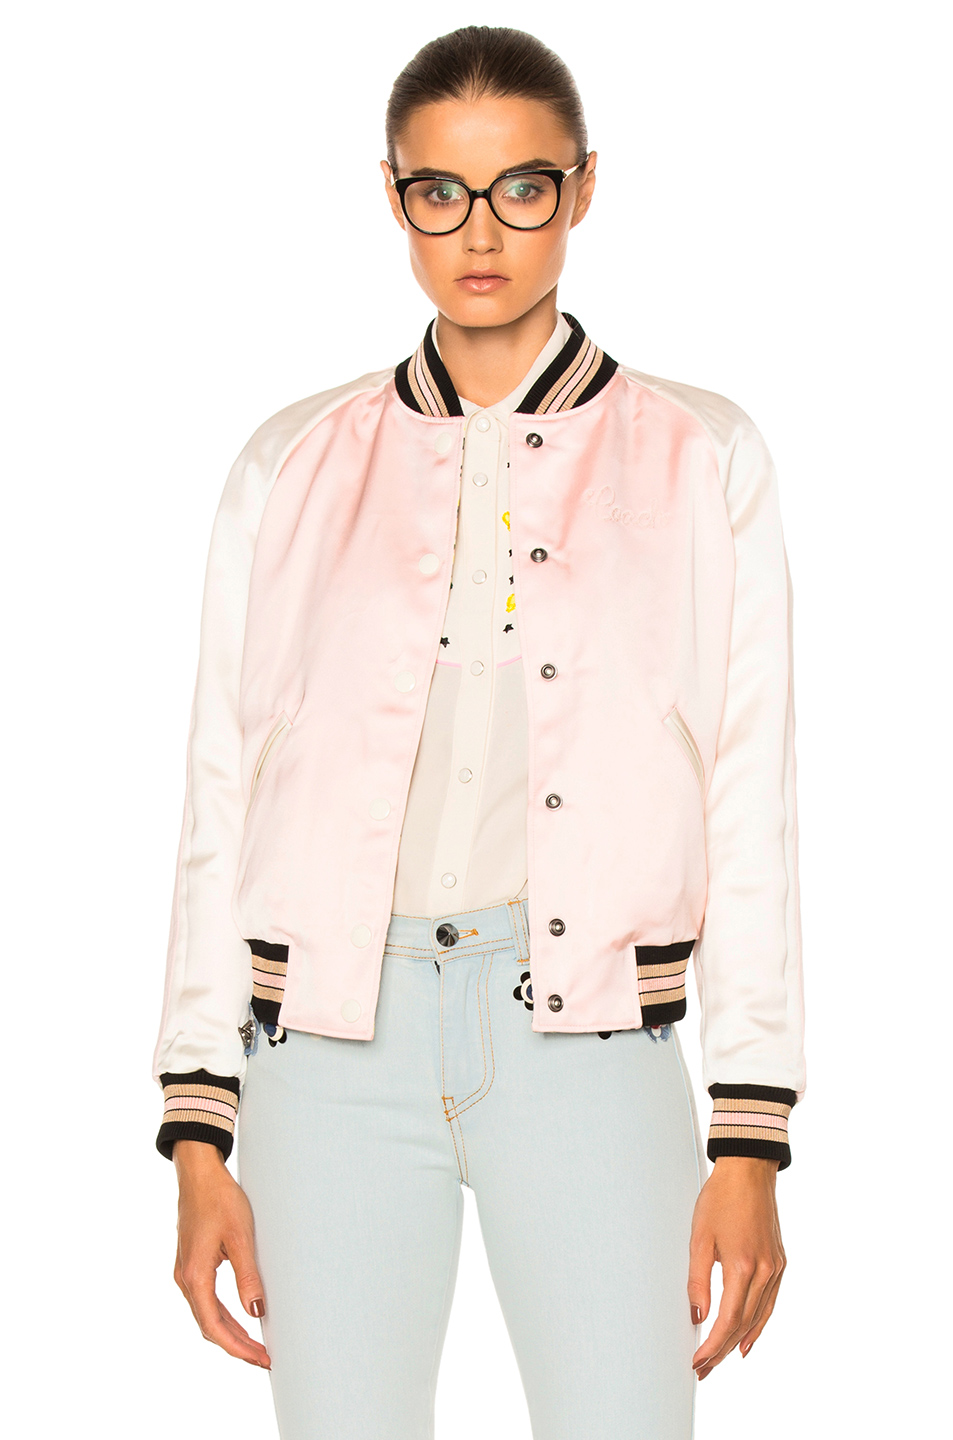 Coach 1941 Reversible Varsity Jacket in Floral,Pink,Stripes,White